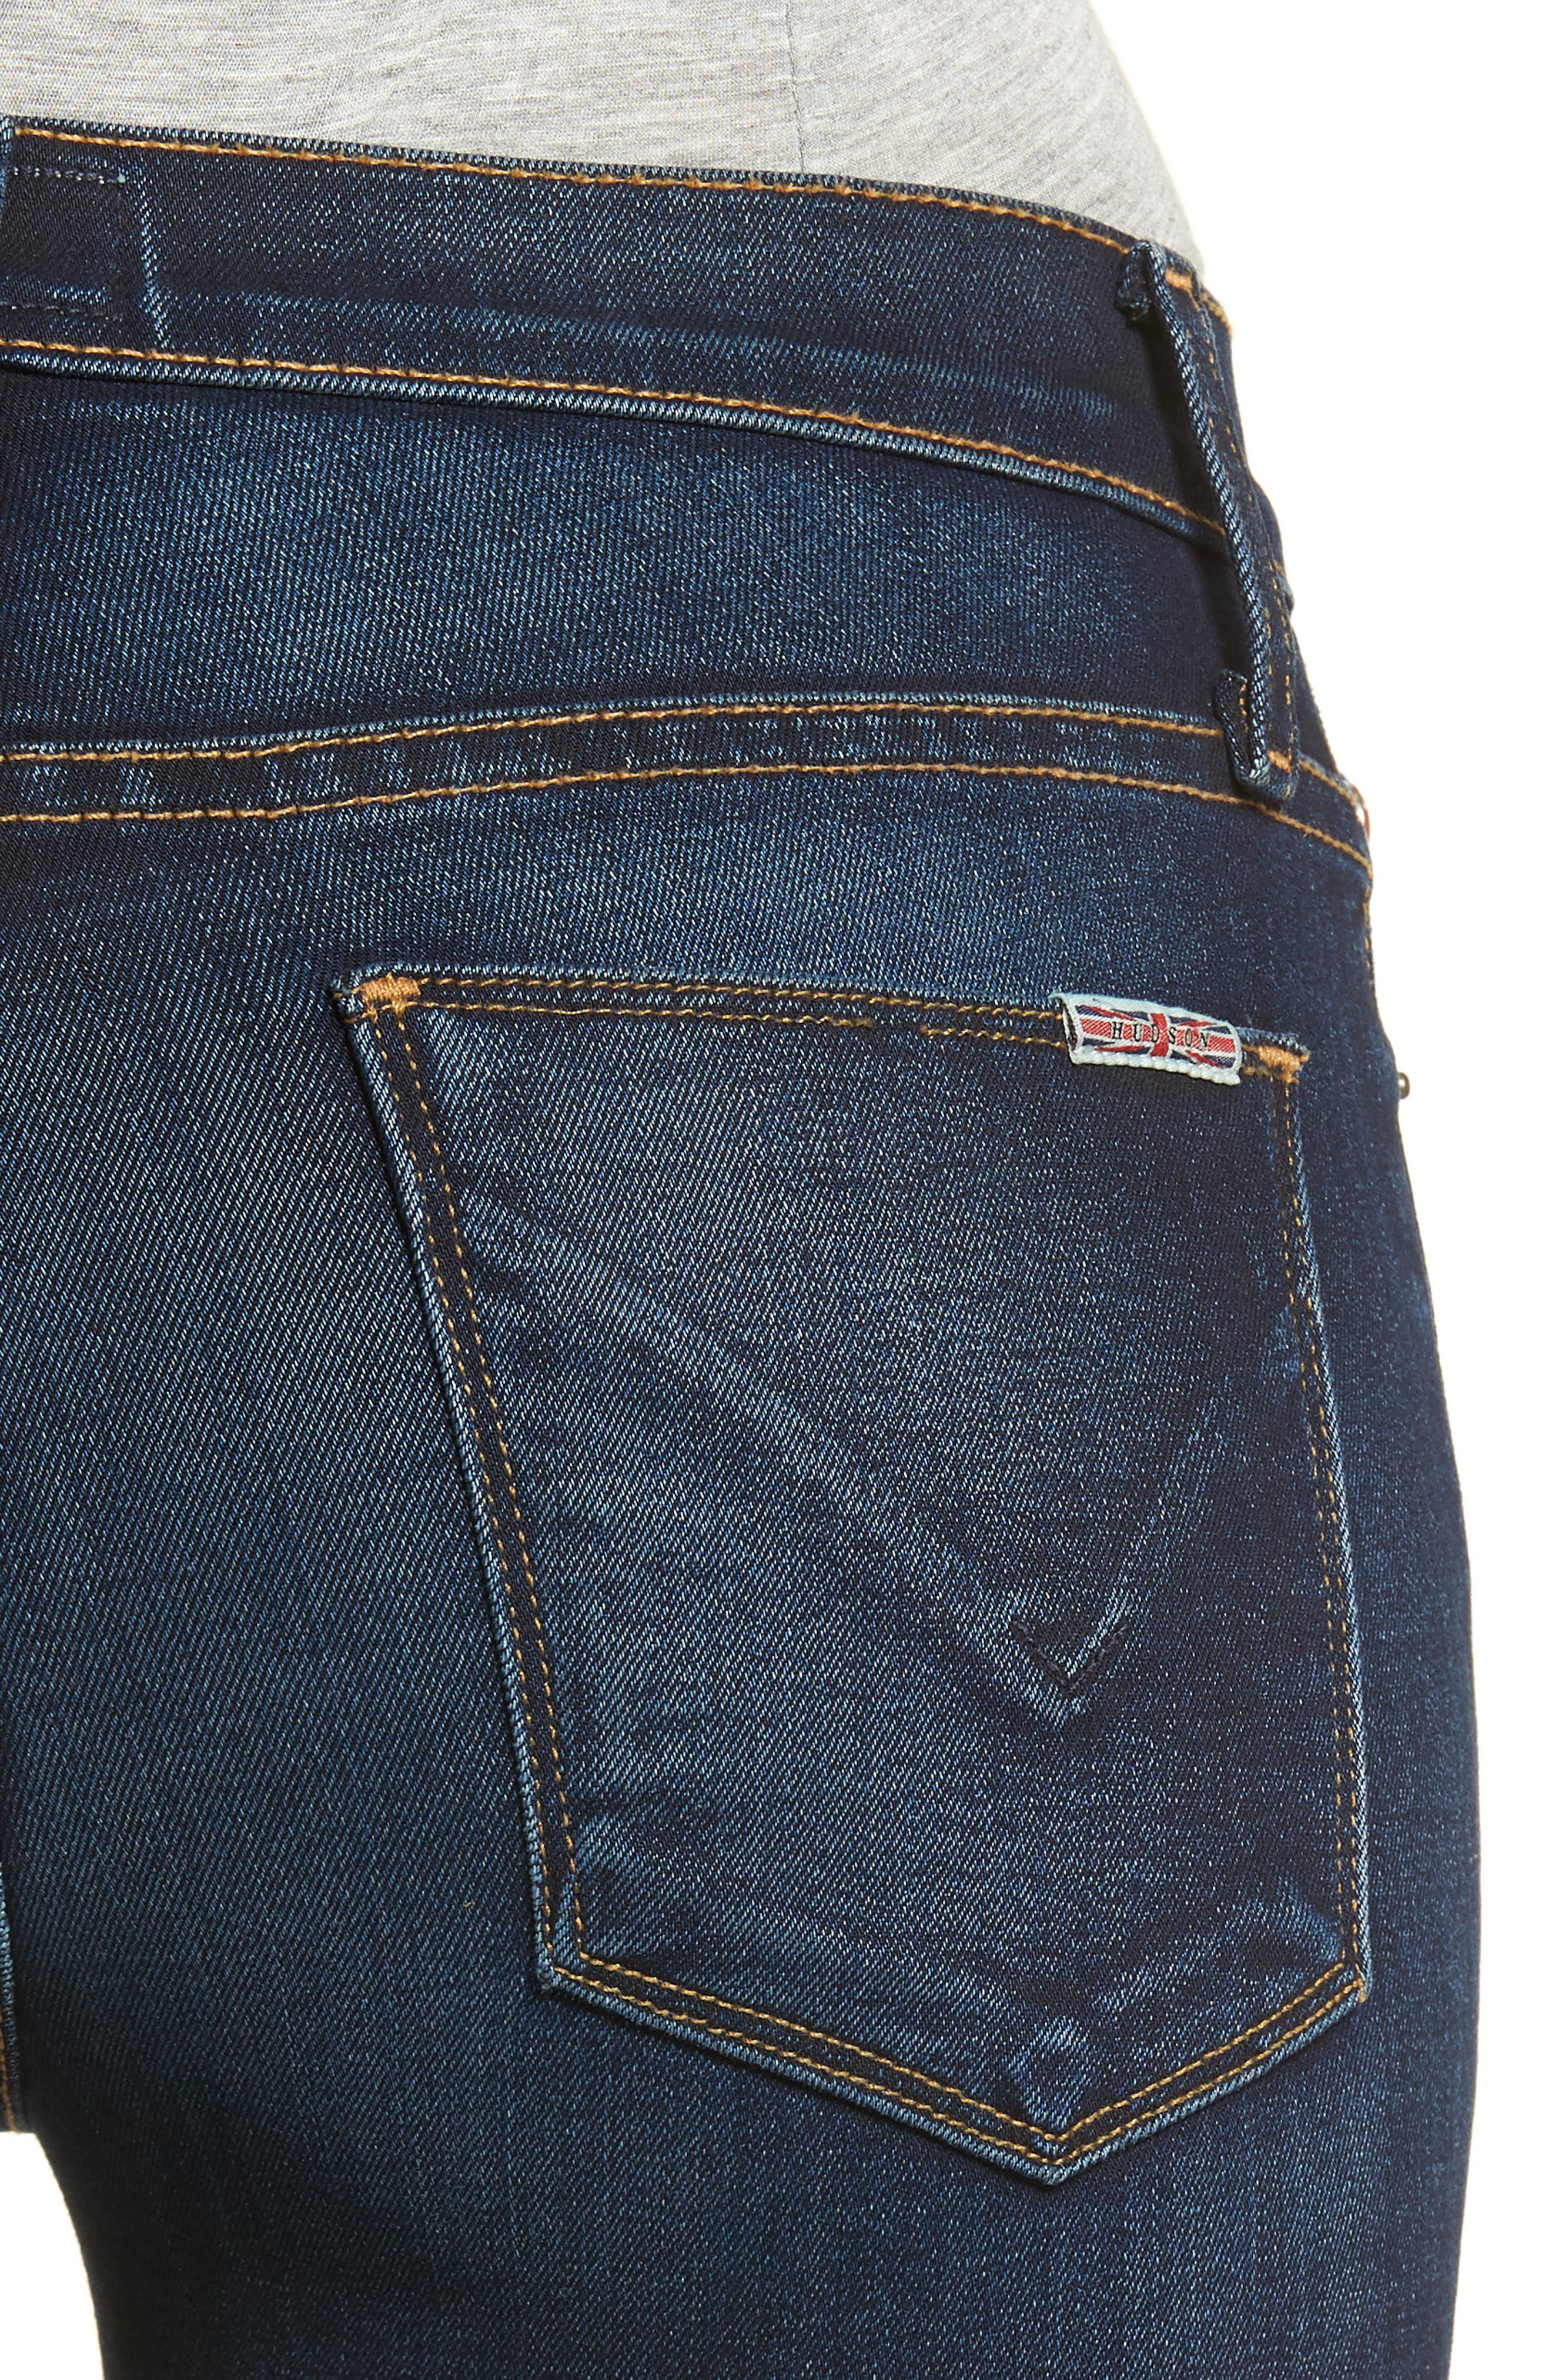 'Nico' Ankle Skinny Jeans,                             Alternate thumbnail 27, color,